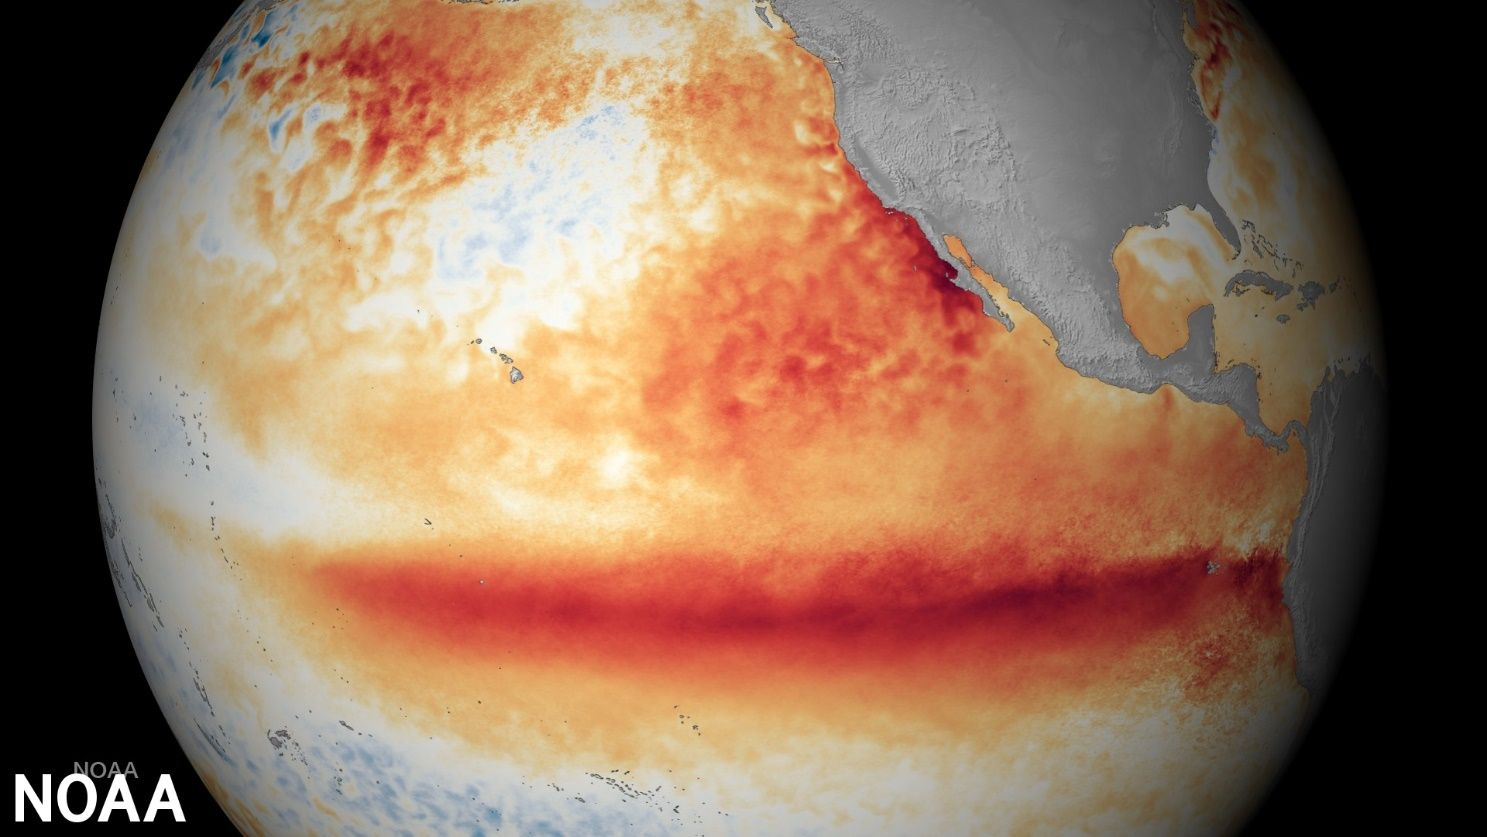 D:\Usuarios\Gustavo\Downloads\PHOTO - Satellite image showing El Nino sea surface temperature departure from norm-2015.11.12 - NOAA-1920x1080-landscape.png.jpg